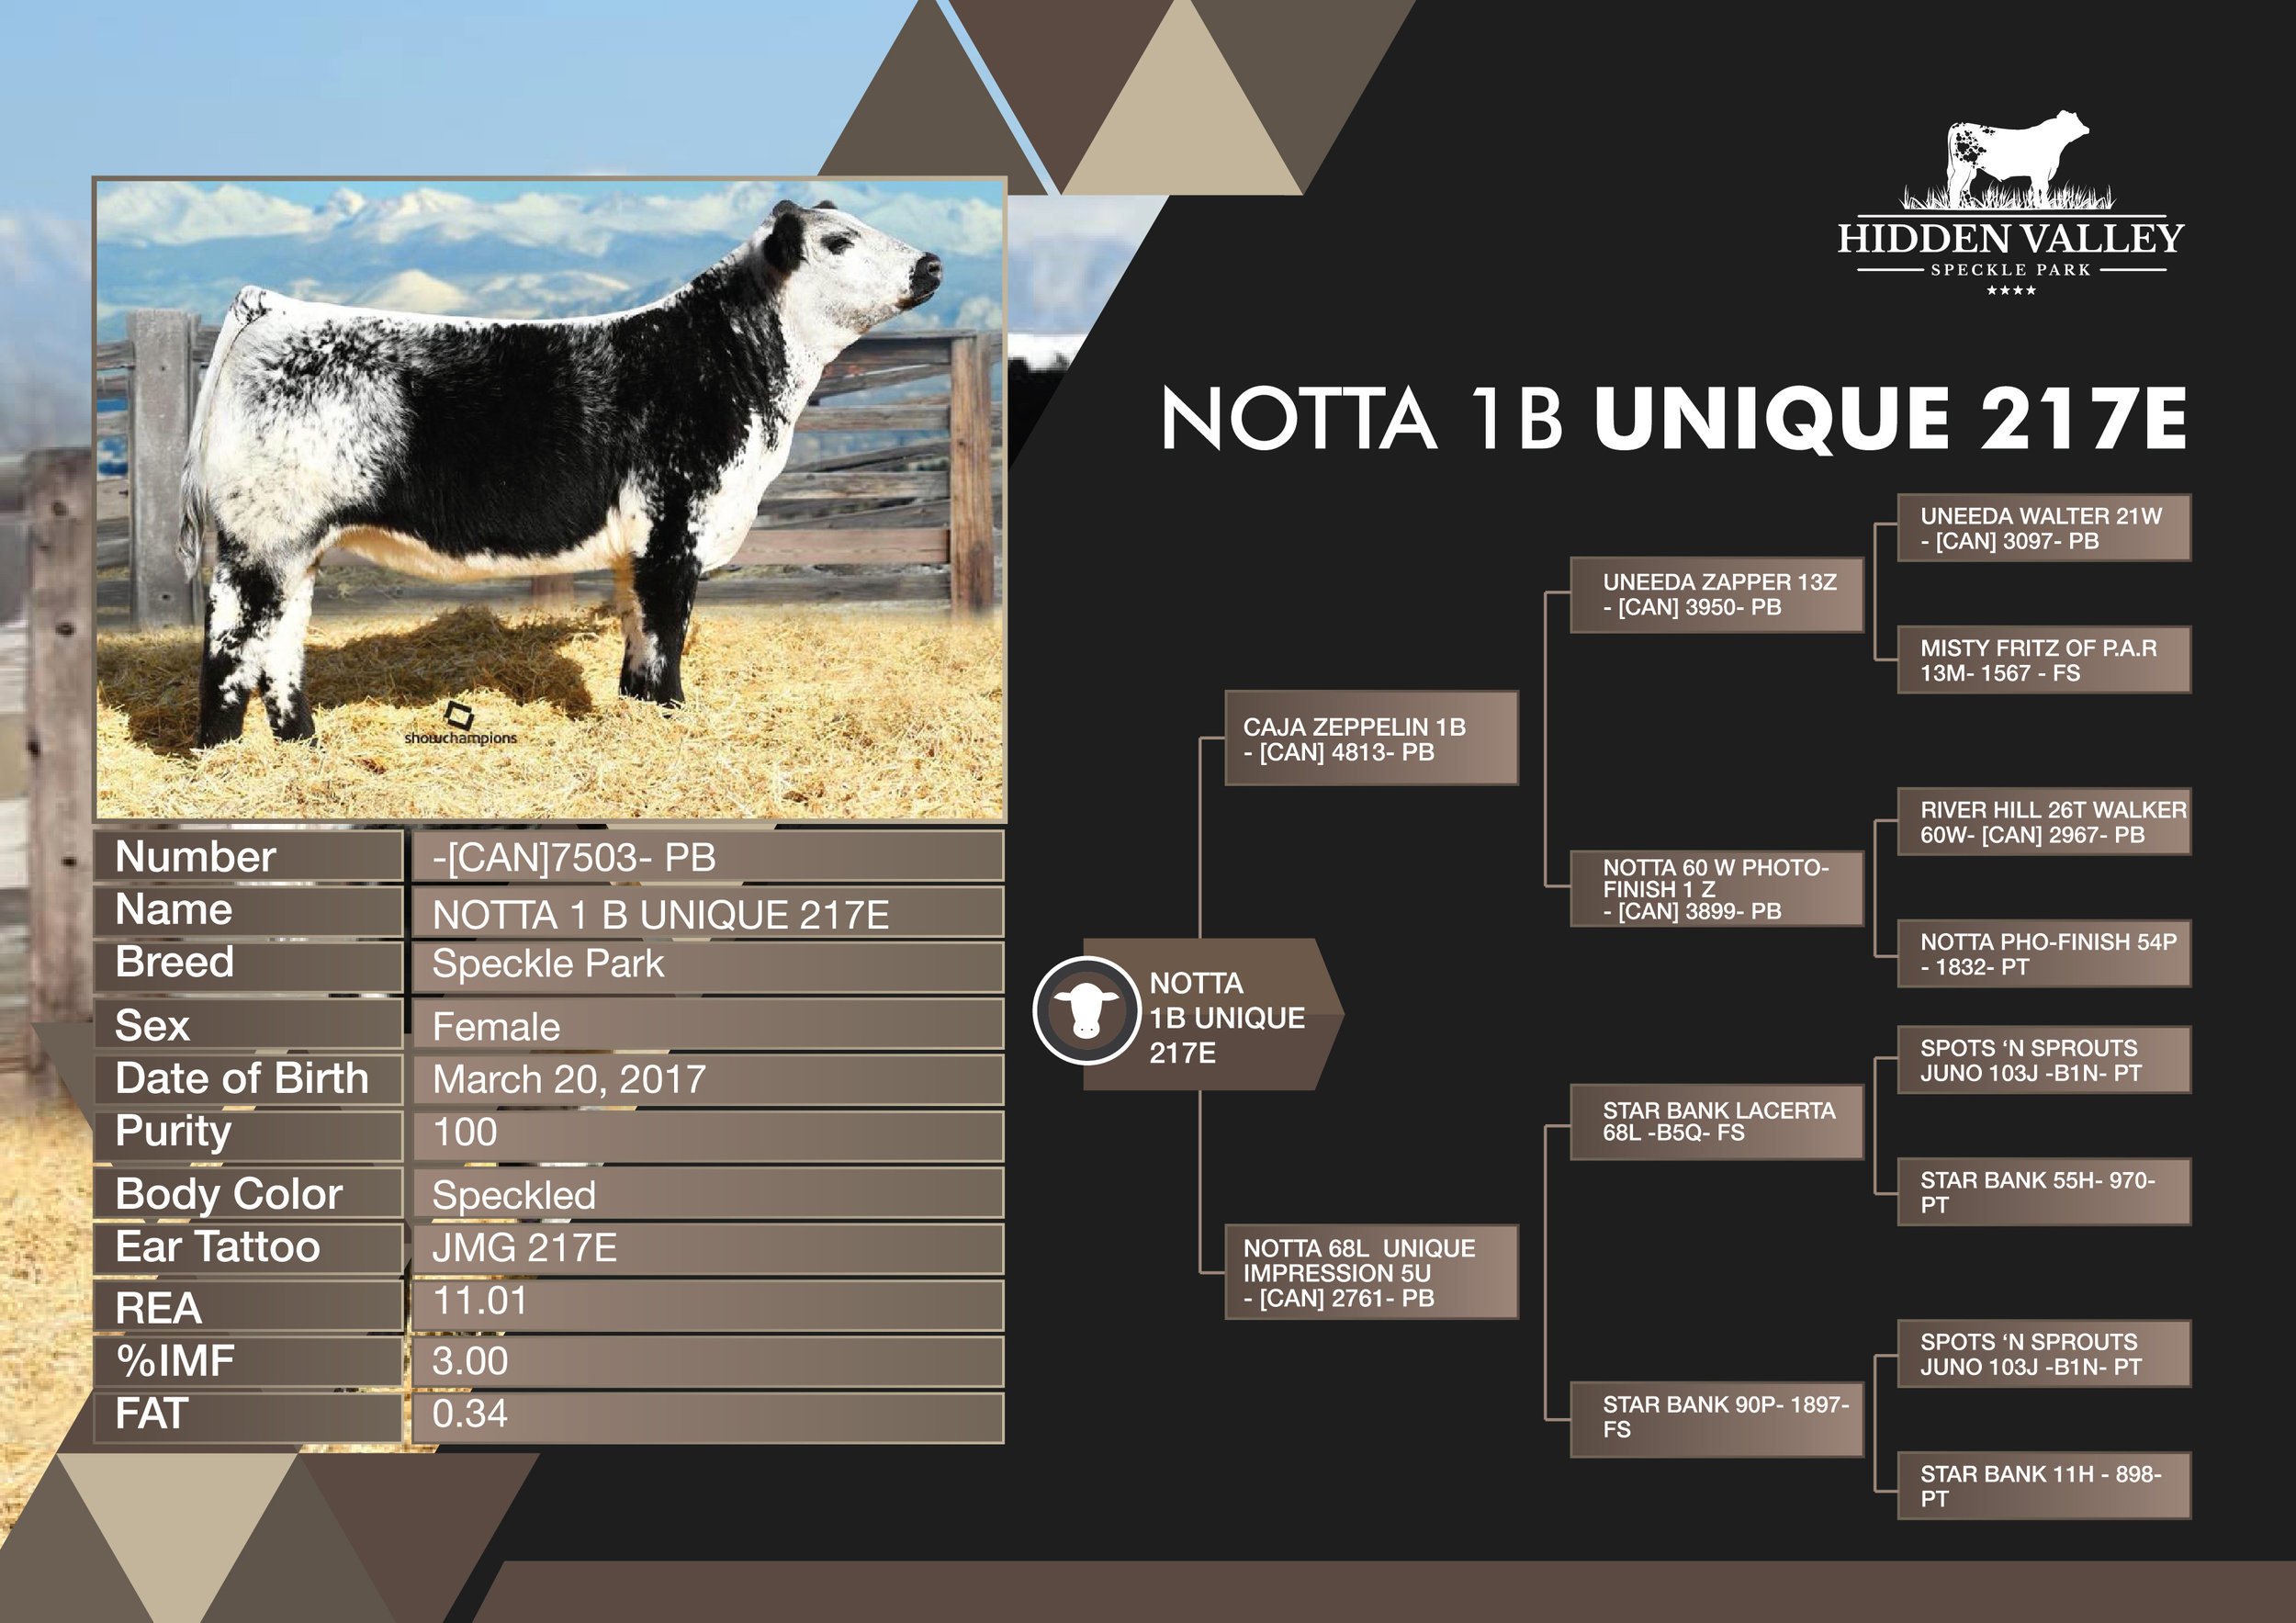 NOTTA_1B_UNIQUE_217E_Flyer01.jpg